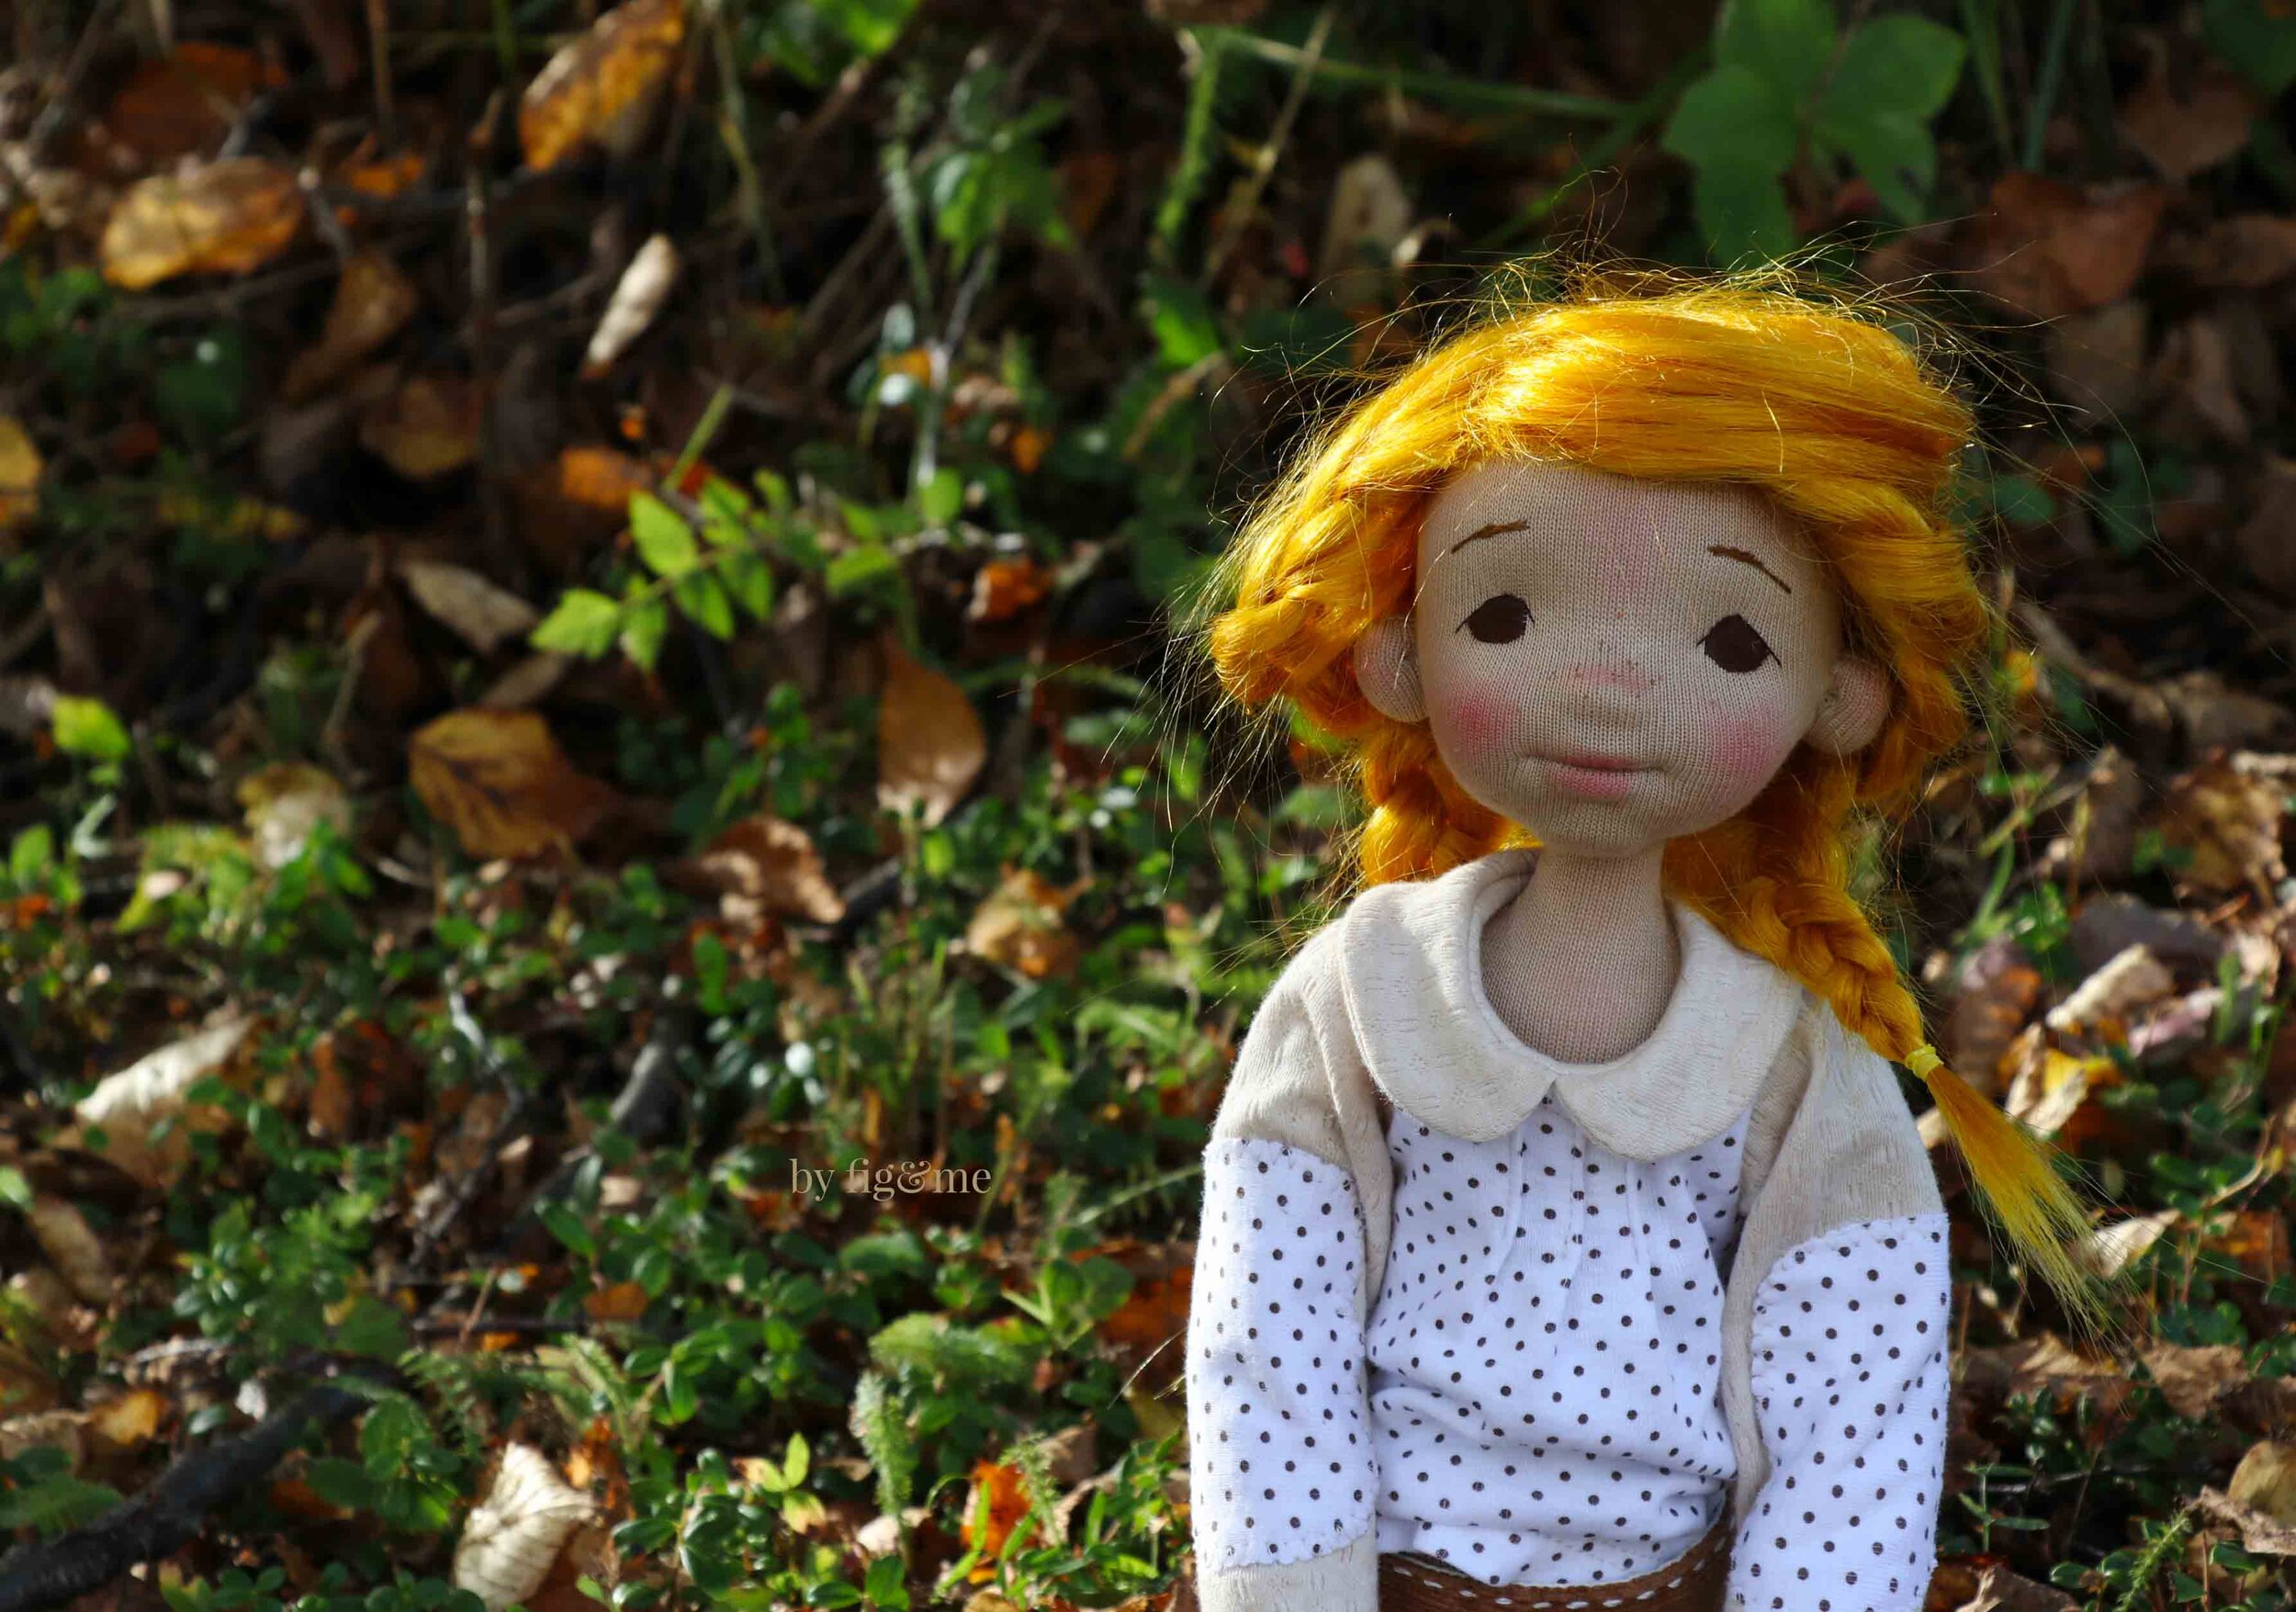 Winona, the first born daughter, a natural fiber art doll by Fig and Me